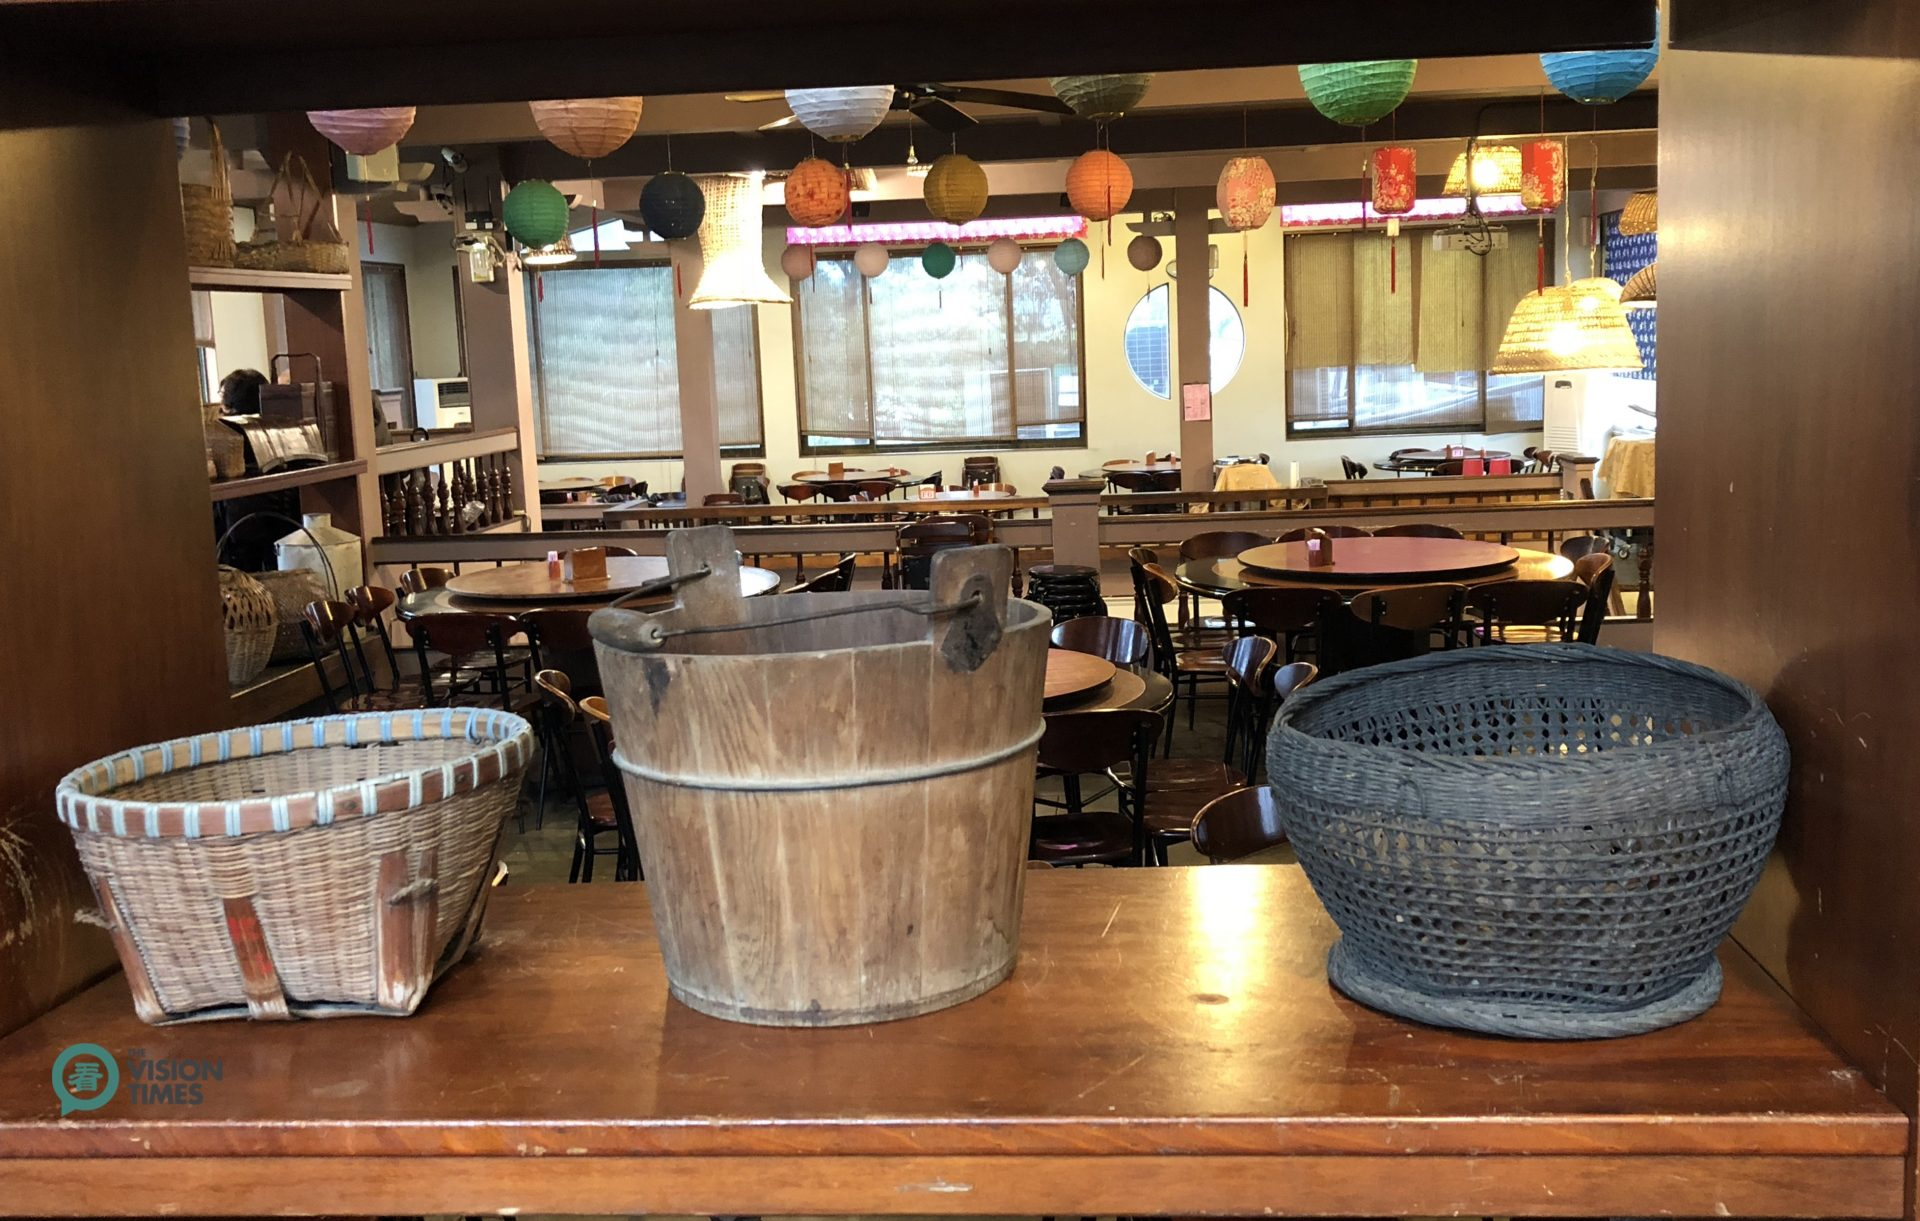 There are many old bamboo articles displayed in Jujube House Restaurant. (Image: Julia Fu / Vision Times)